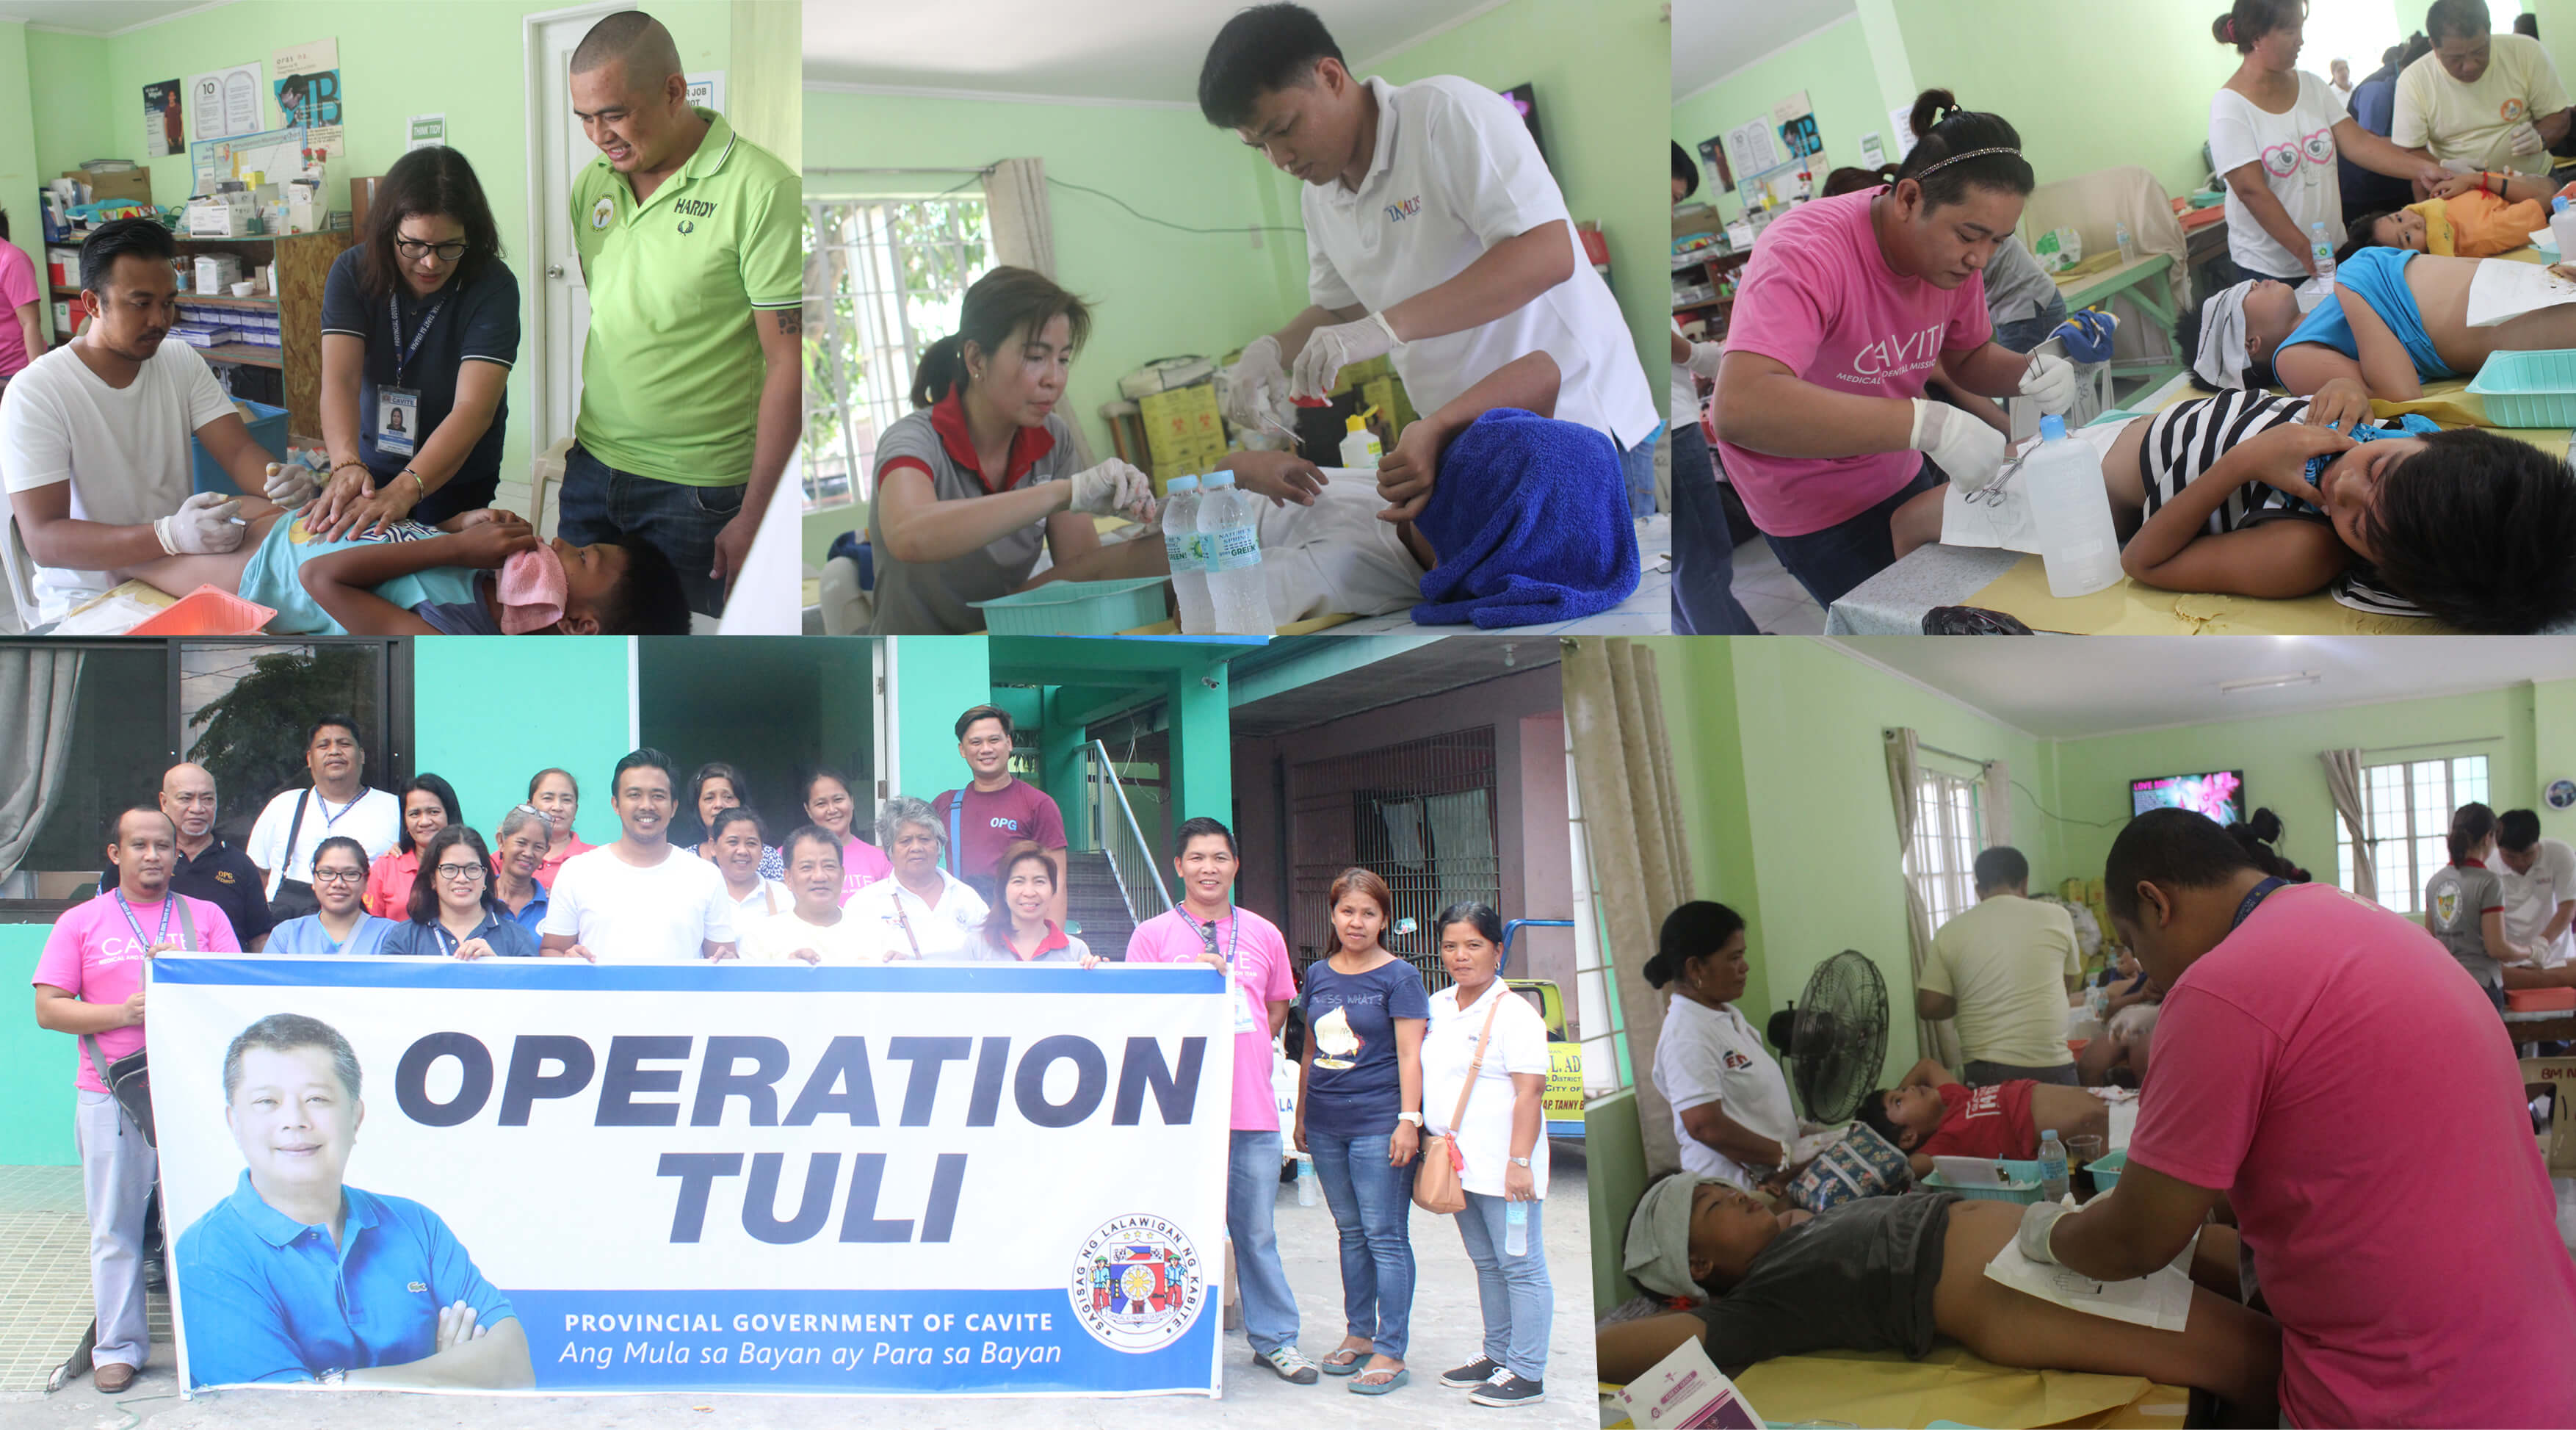 OPERATION TULI IN BRGY  ALAPAN 2A | Cavite